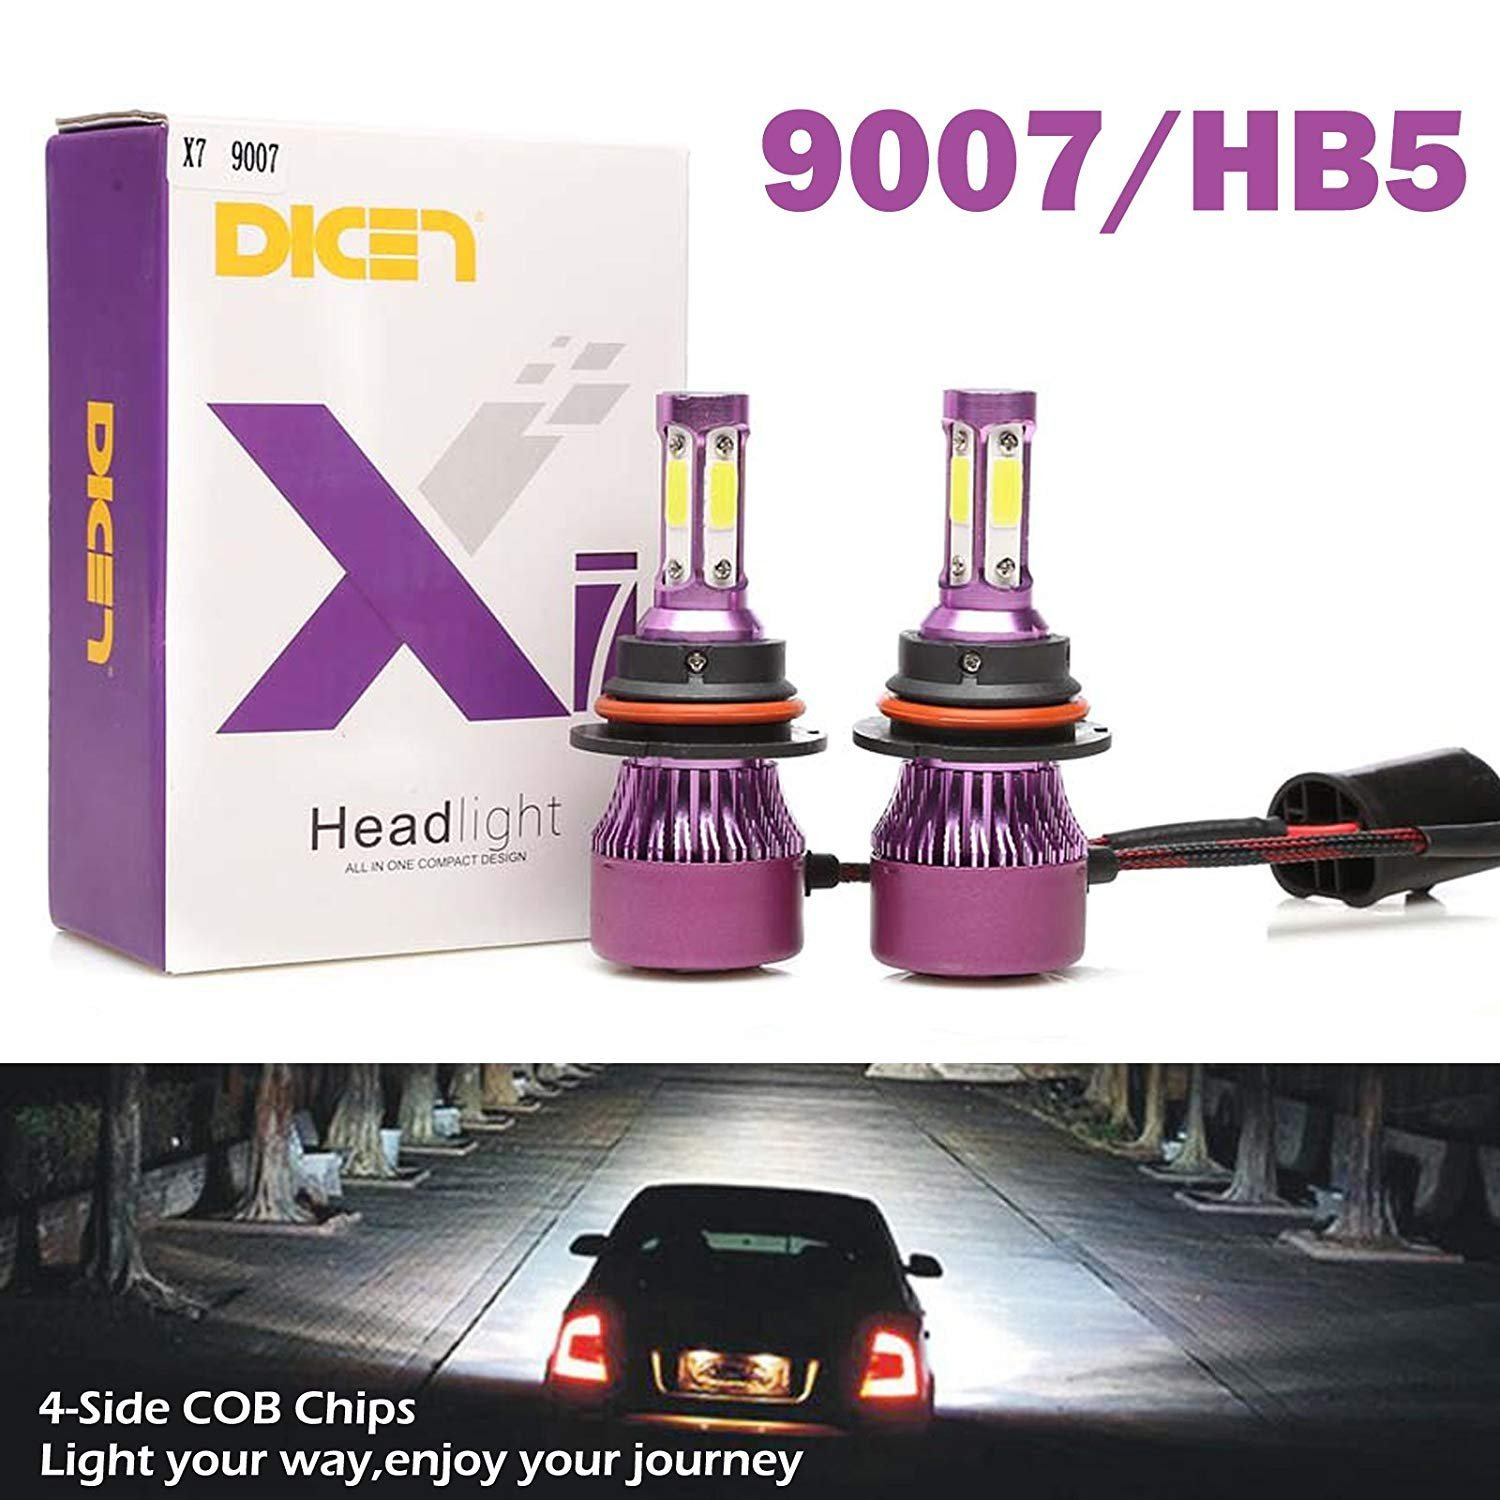 9007 HB5 LED Headlight Bulbs High Low Beam 6000K Cool White Bright 20000LM 4 Side COB Chips Car Headlamp Replacement Kit (Pack of 2, 2 Year Warranty)